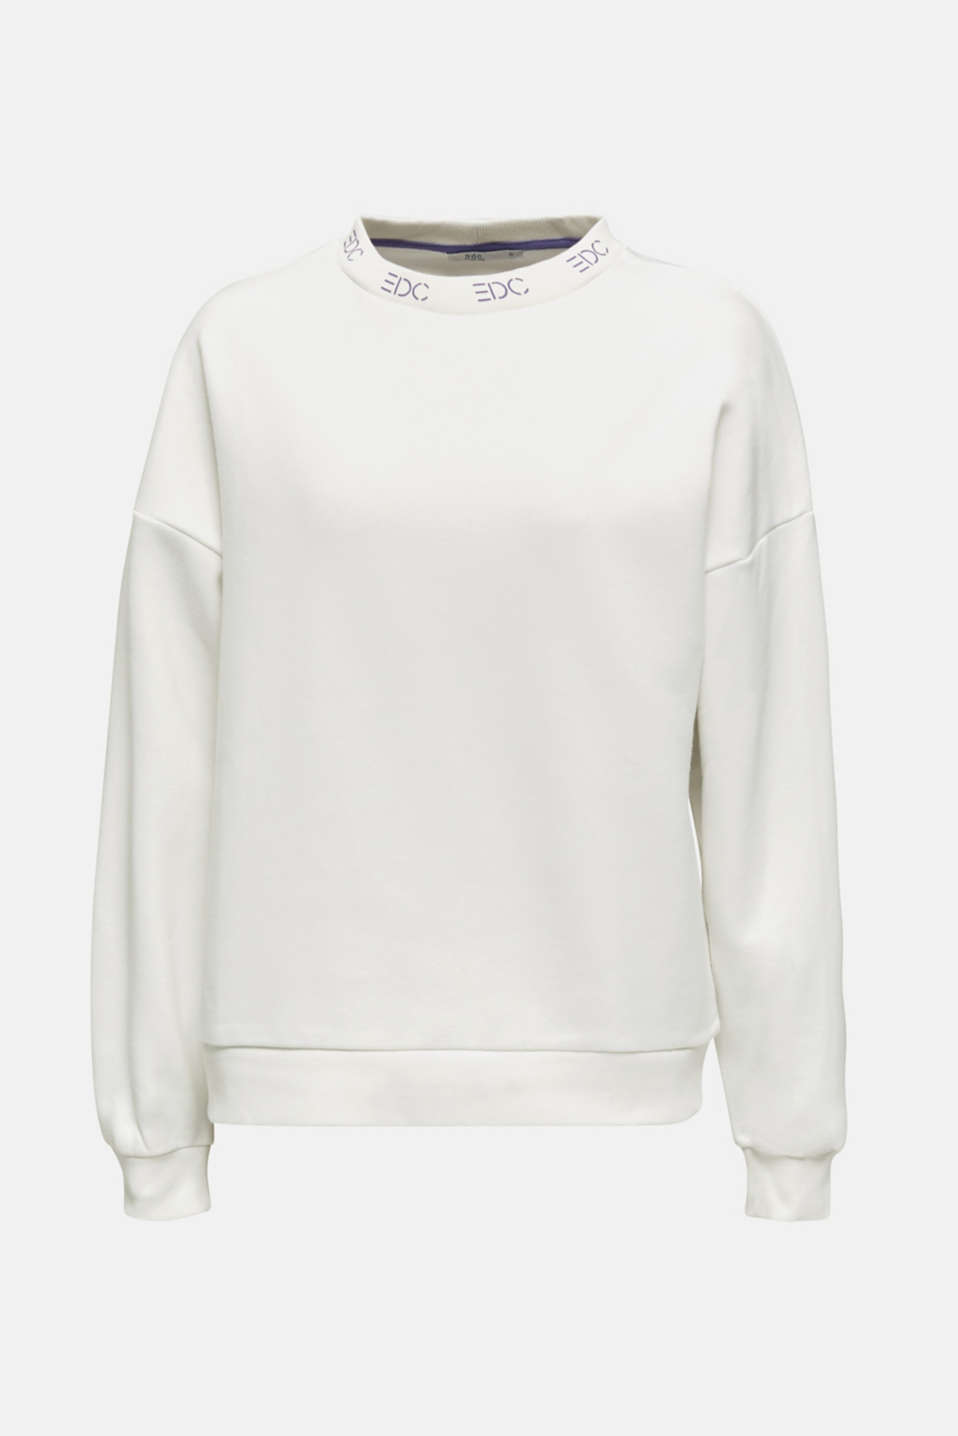 Sweatshirt with a logo on the cuffs, OFF WHITE, detail image number 5